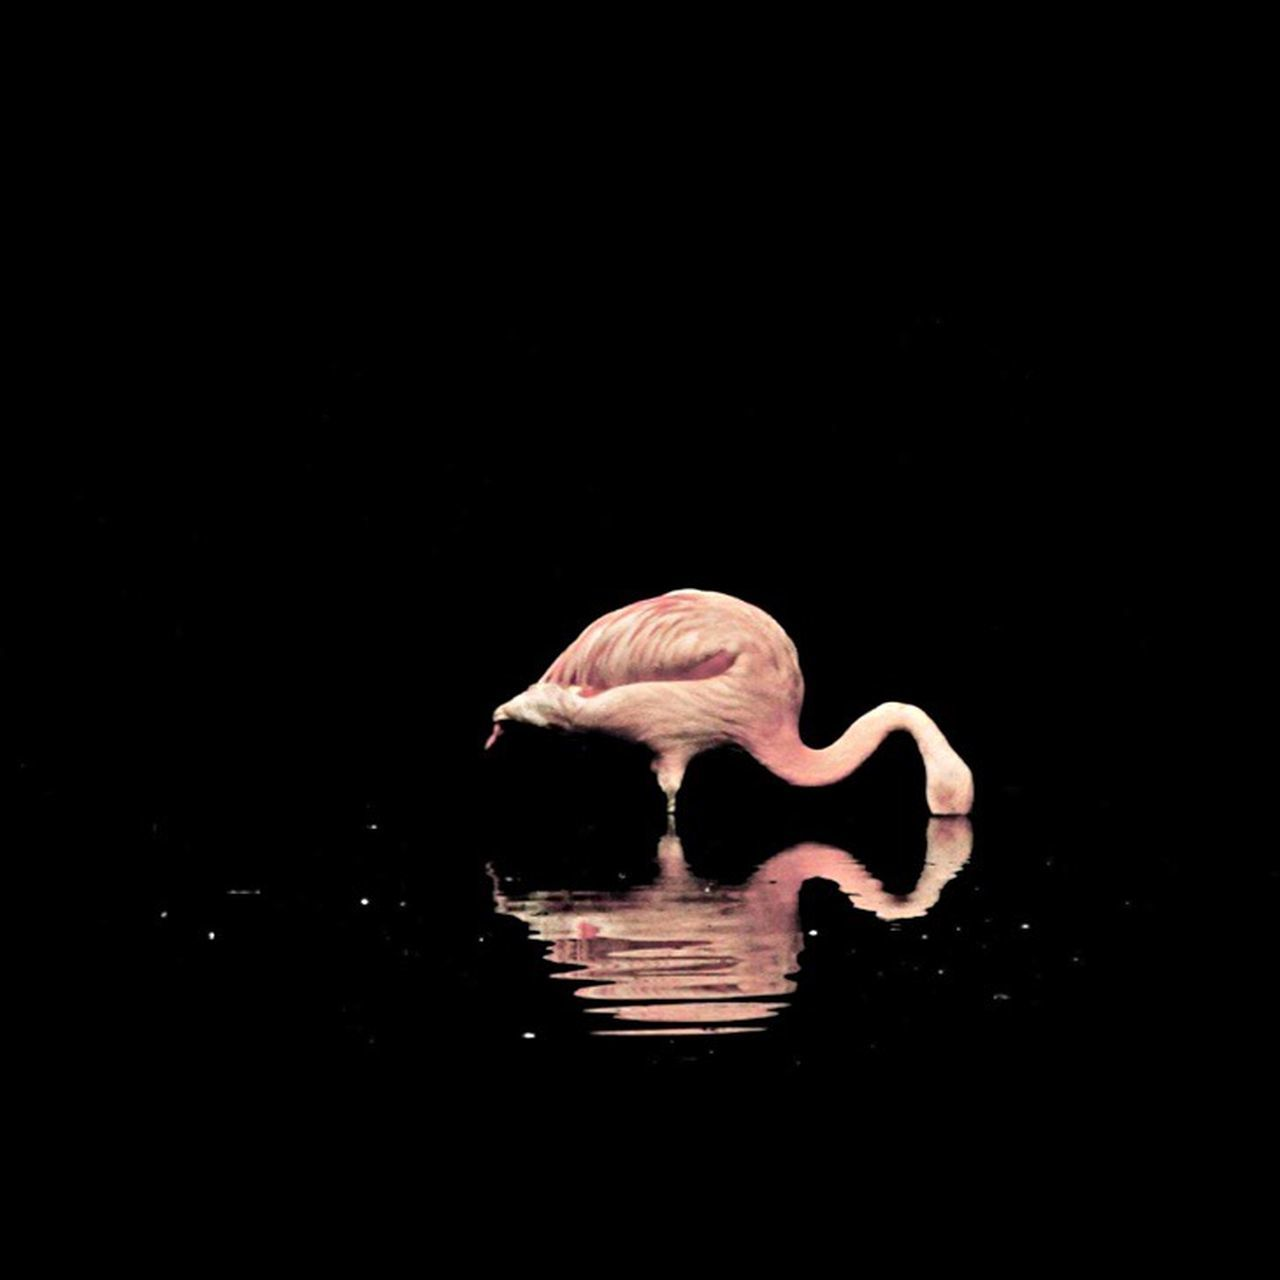 one animal, animal themes, animals in the wild, reflection, flamingo, water, black background, animal wildlife, waterfront, studio shot, no people, bird, swimming, nature, close-up, day, beauty in nature, swan, outdoors